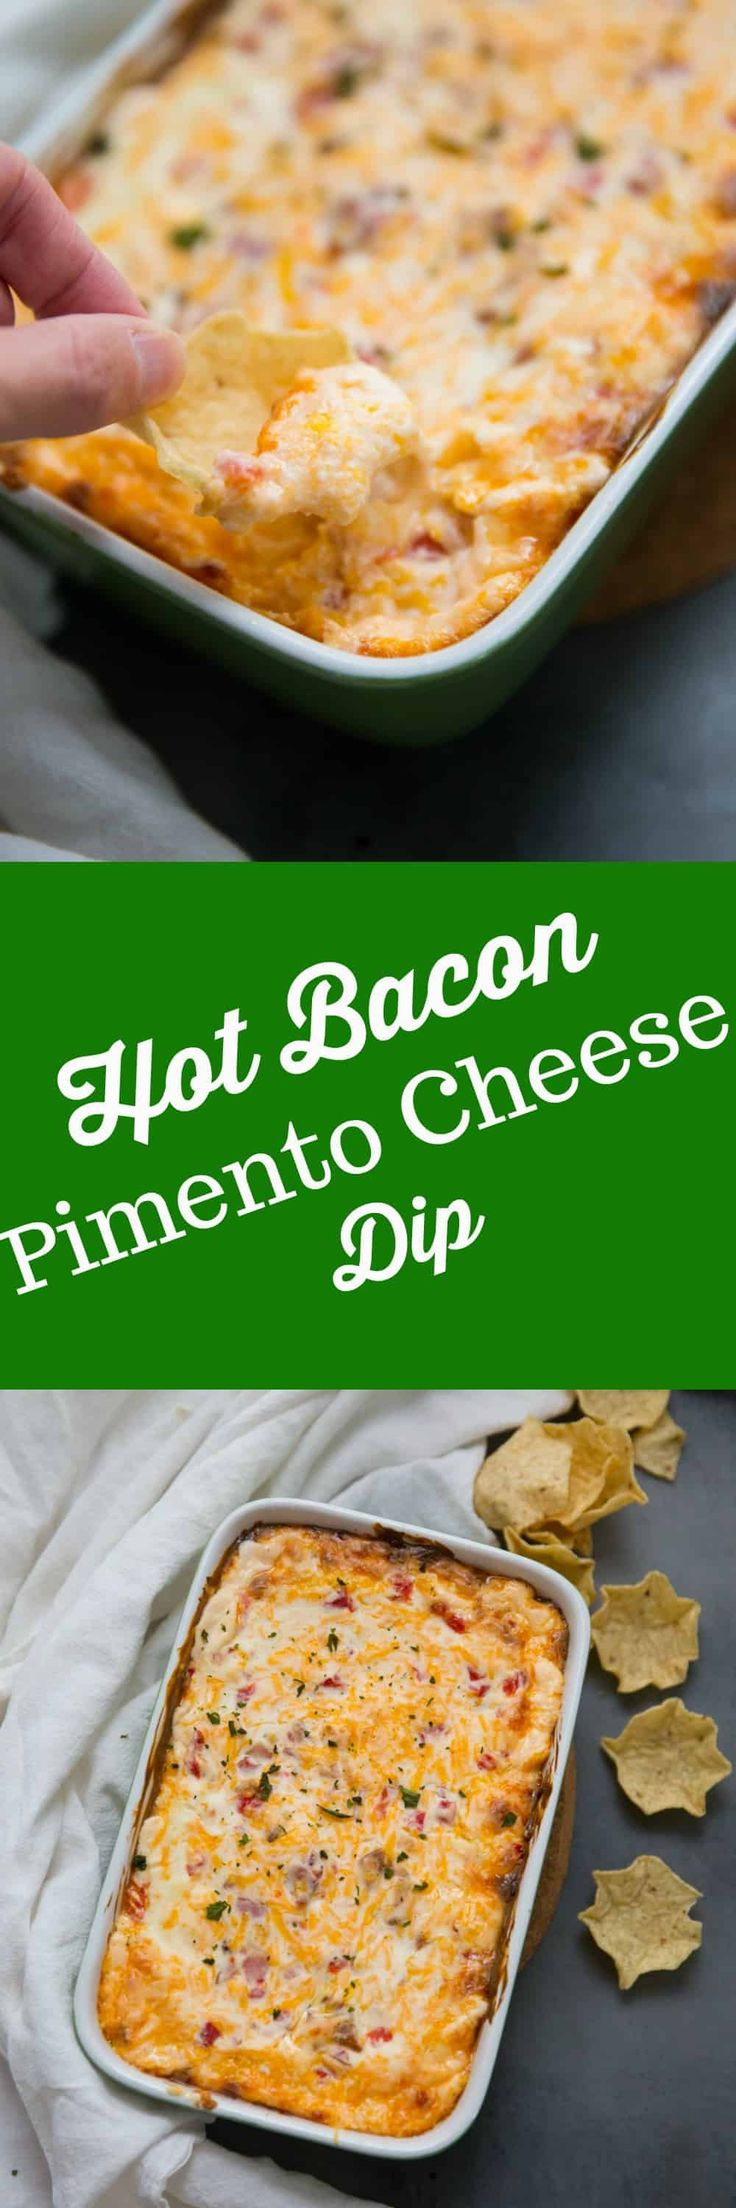 This pimento cheese dip takes a southern classic and makes it better! Bacon is added to homemade pimento cheese then the whole dip gets backed until the cheese is hot and melted. Gooey never looked so good! via @Lemonsforlulu